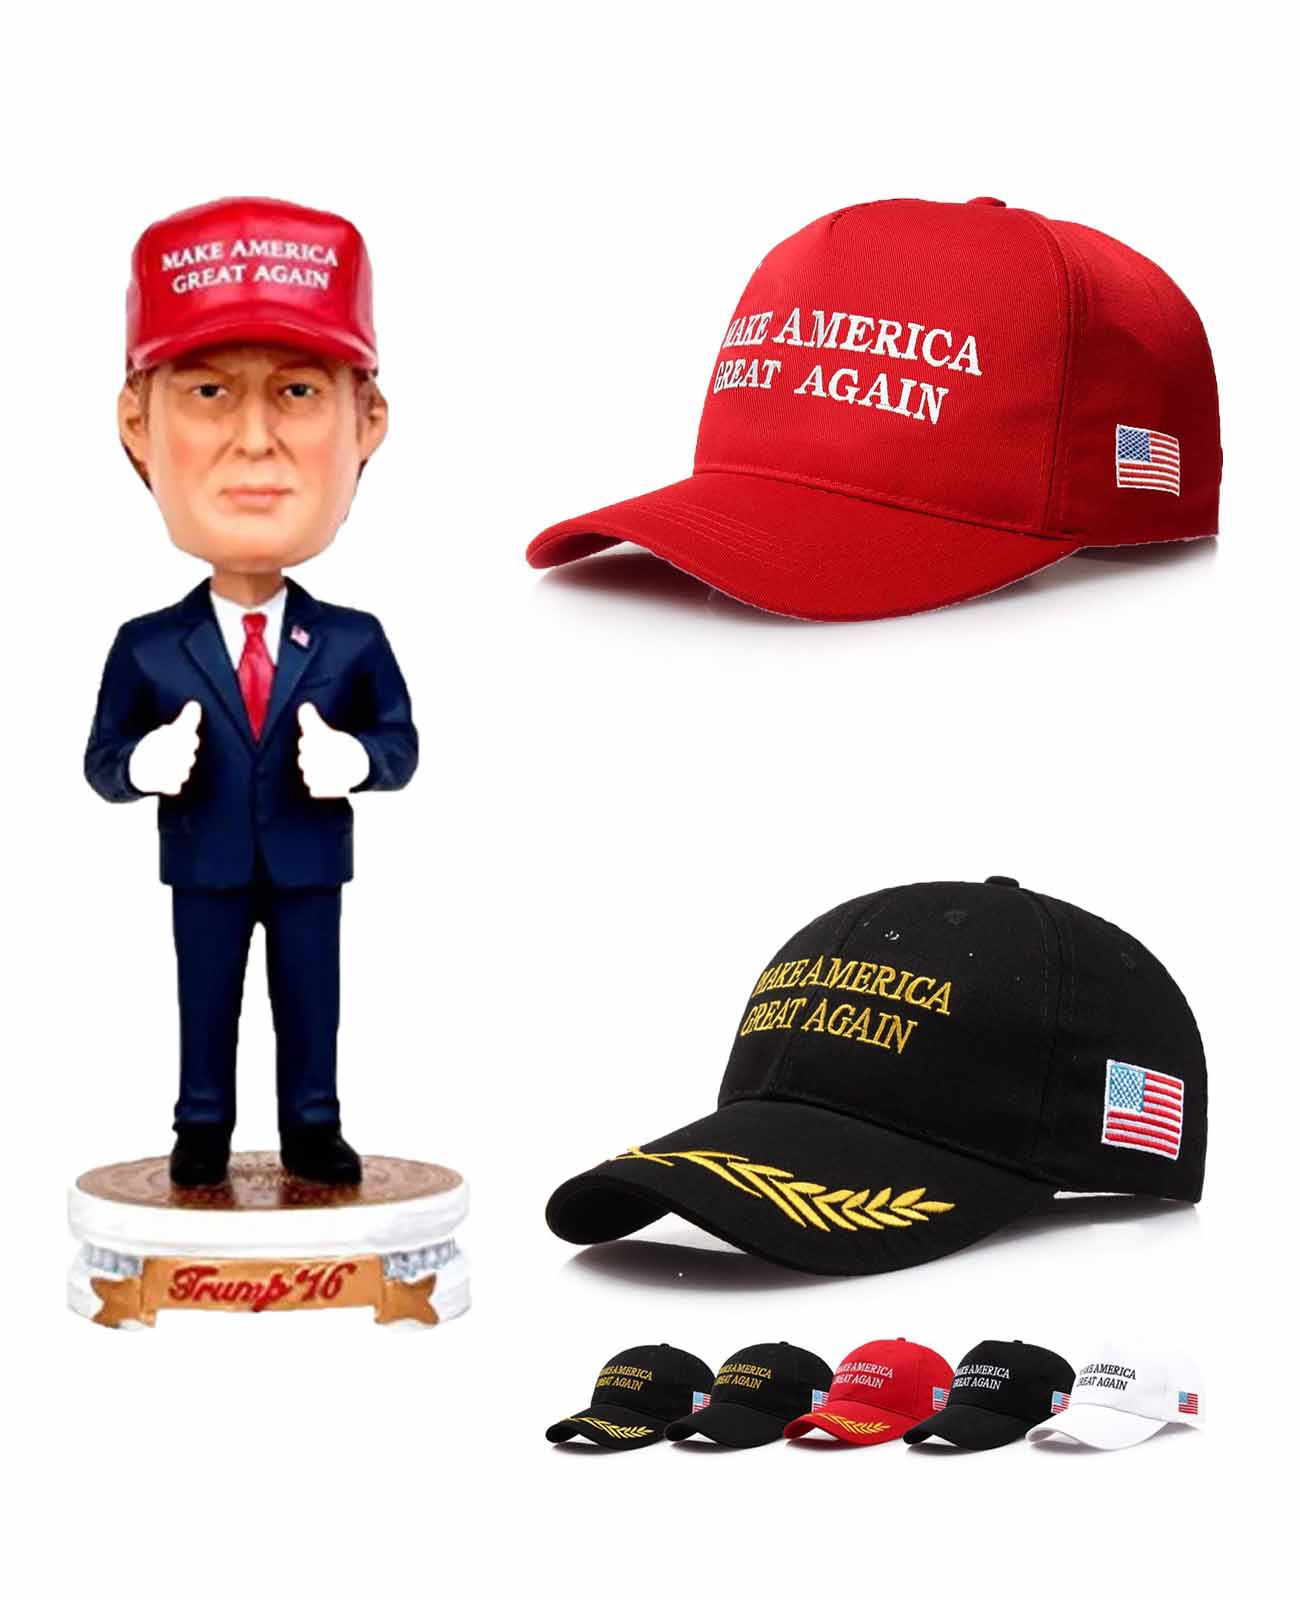 fc22fe2f9 New Trump Hat Letter Print Make America Great Again Cap for USA President  Fans Caps 17 Style Black Red White Blue Hats